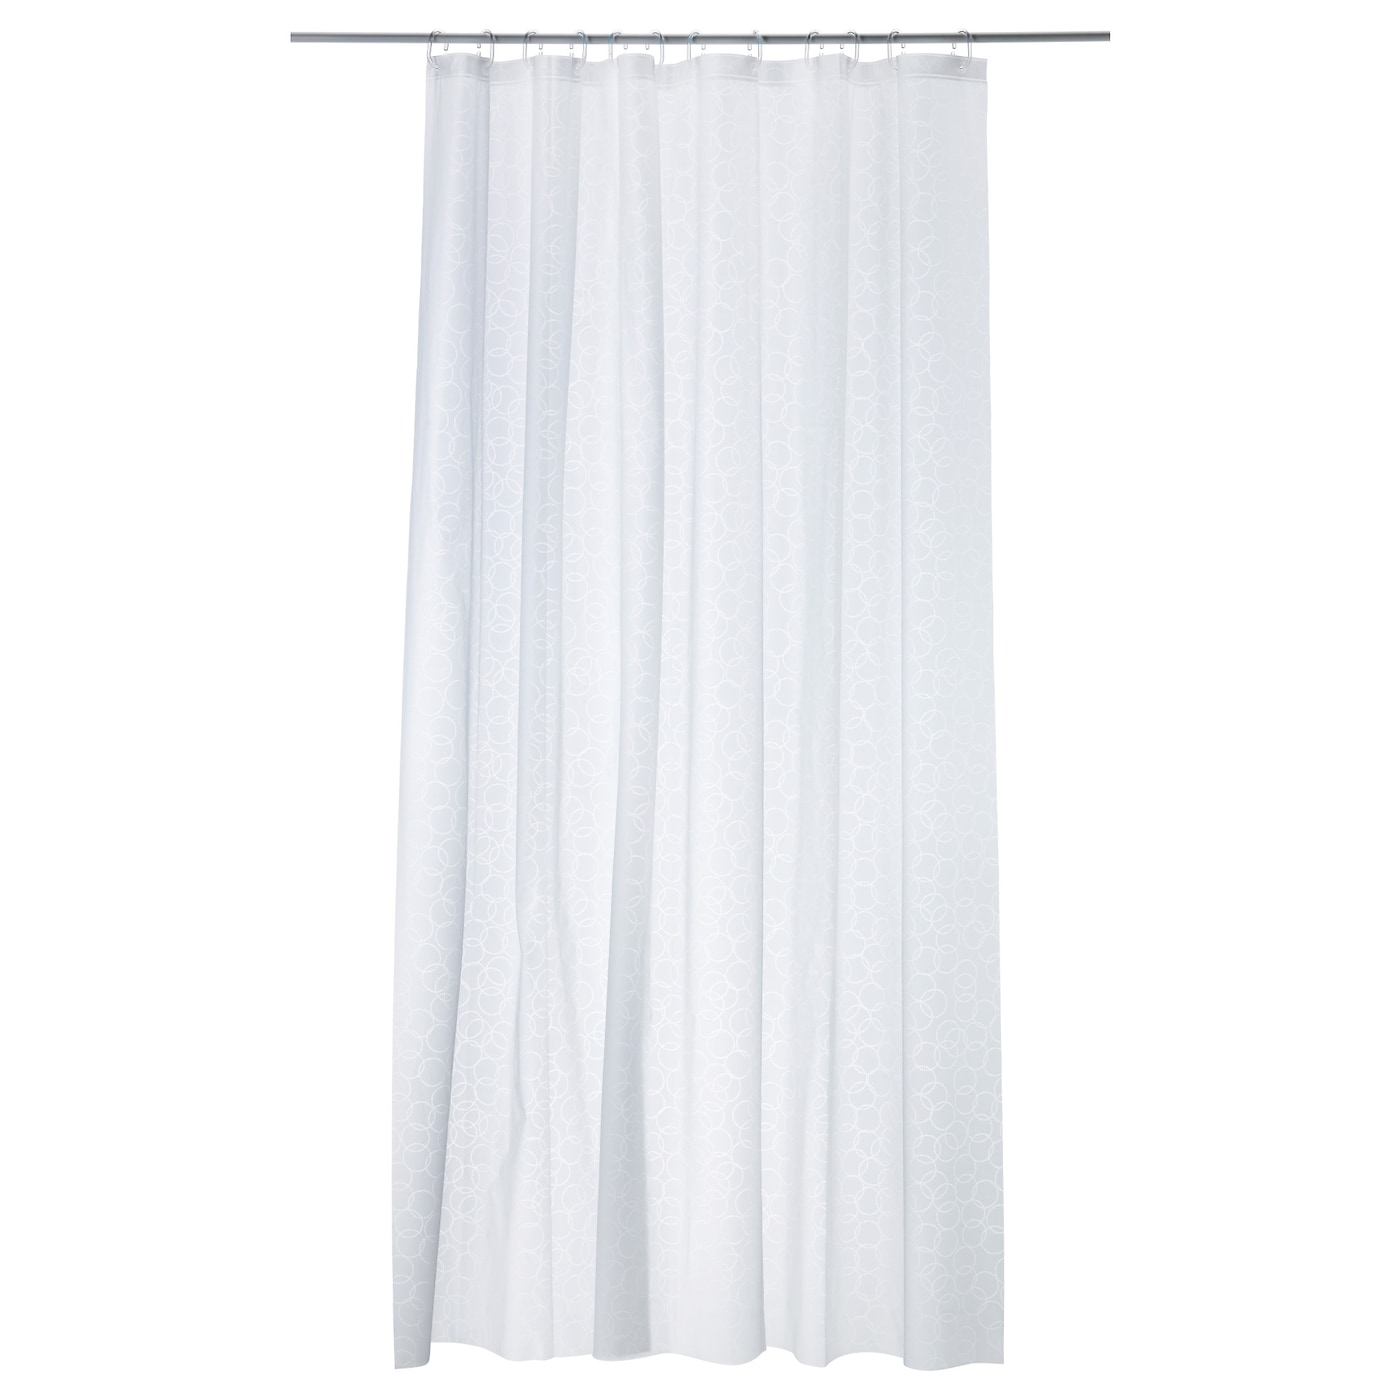 Innaren shower curtain white 180x180 cm ikea for White curtains ikea